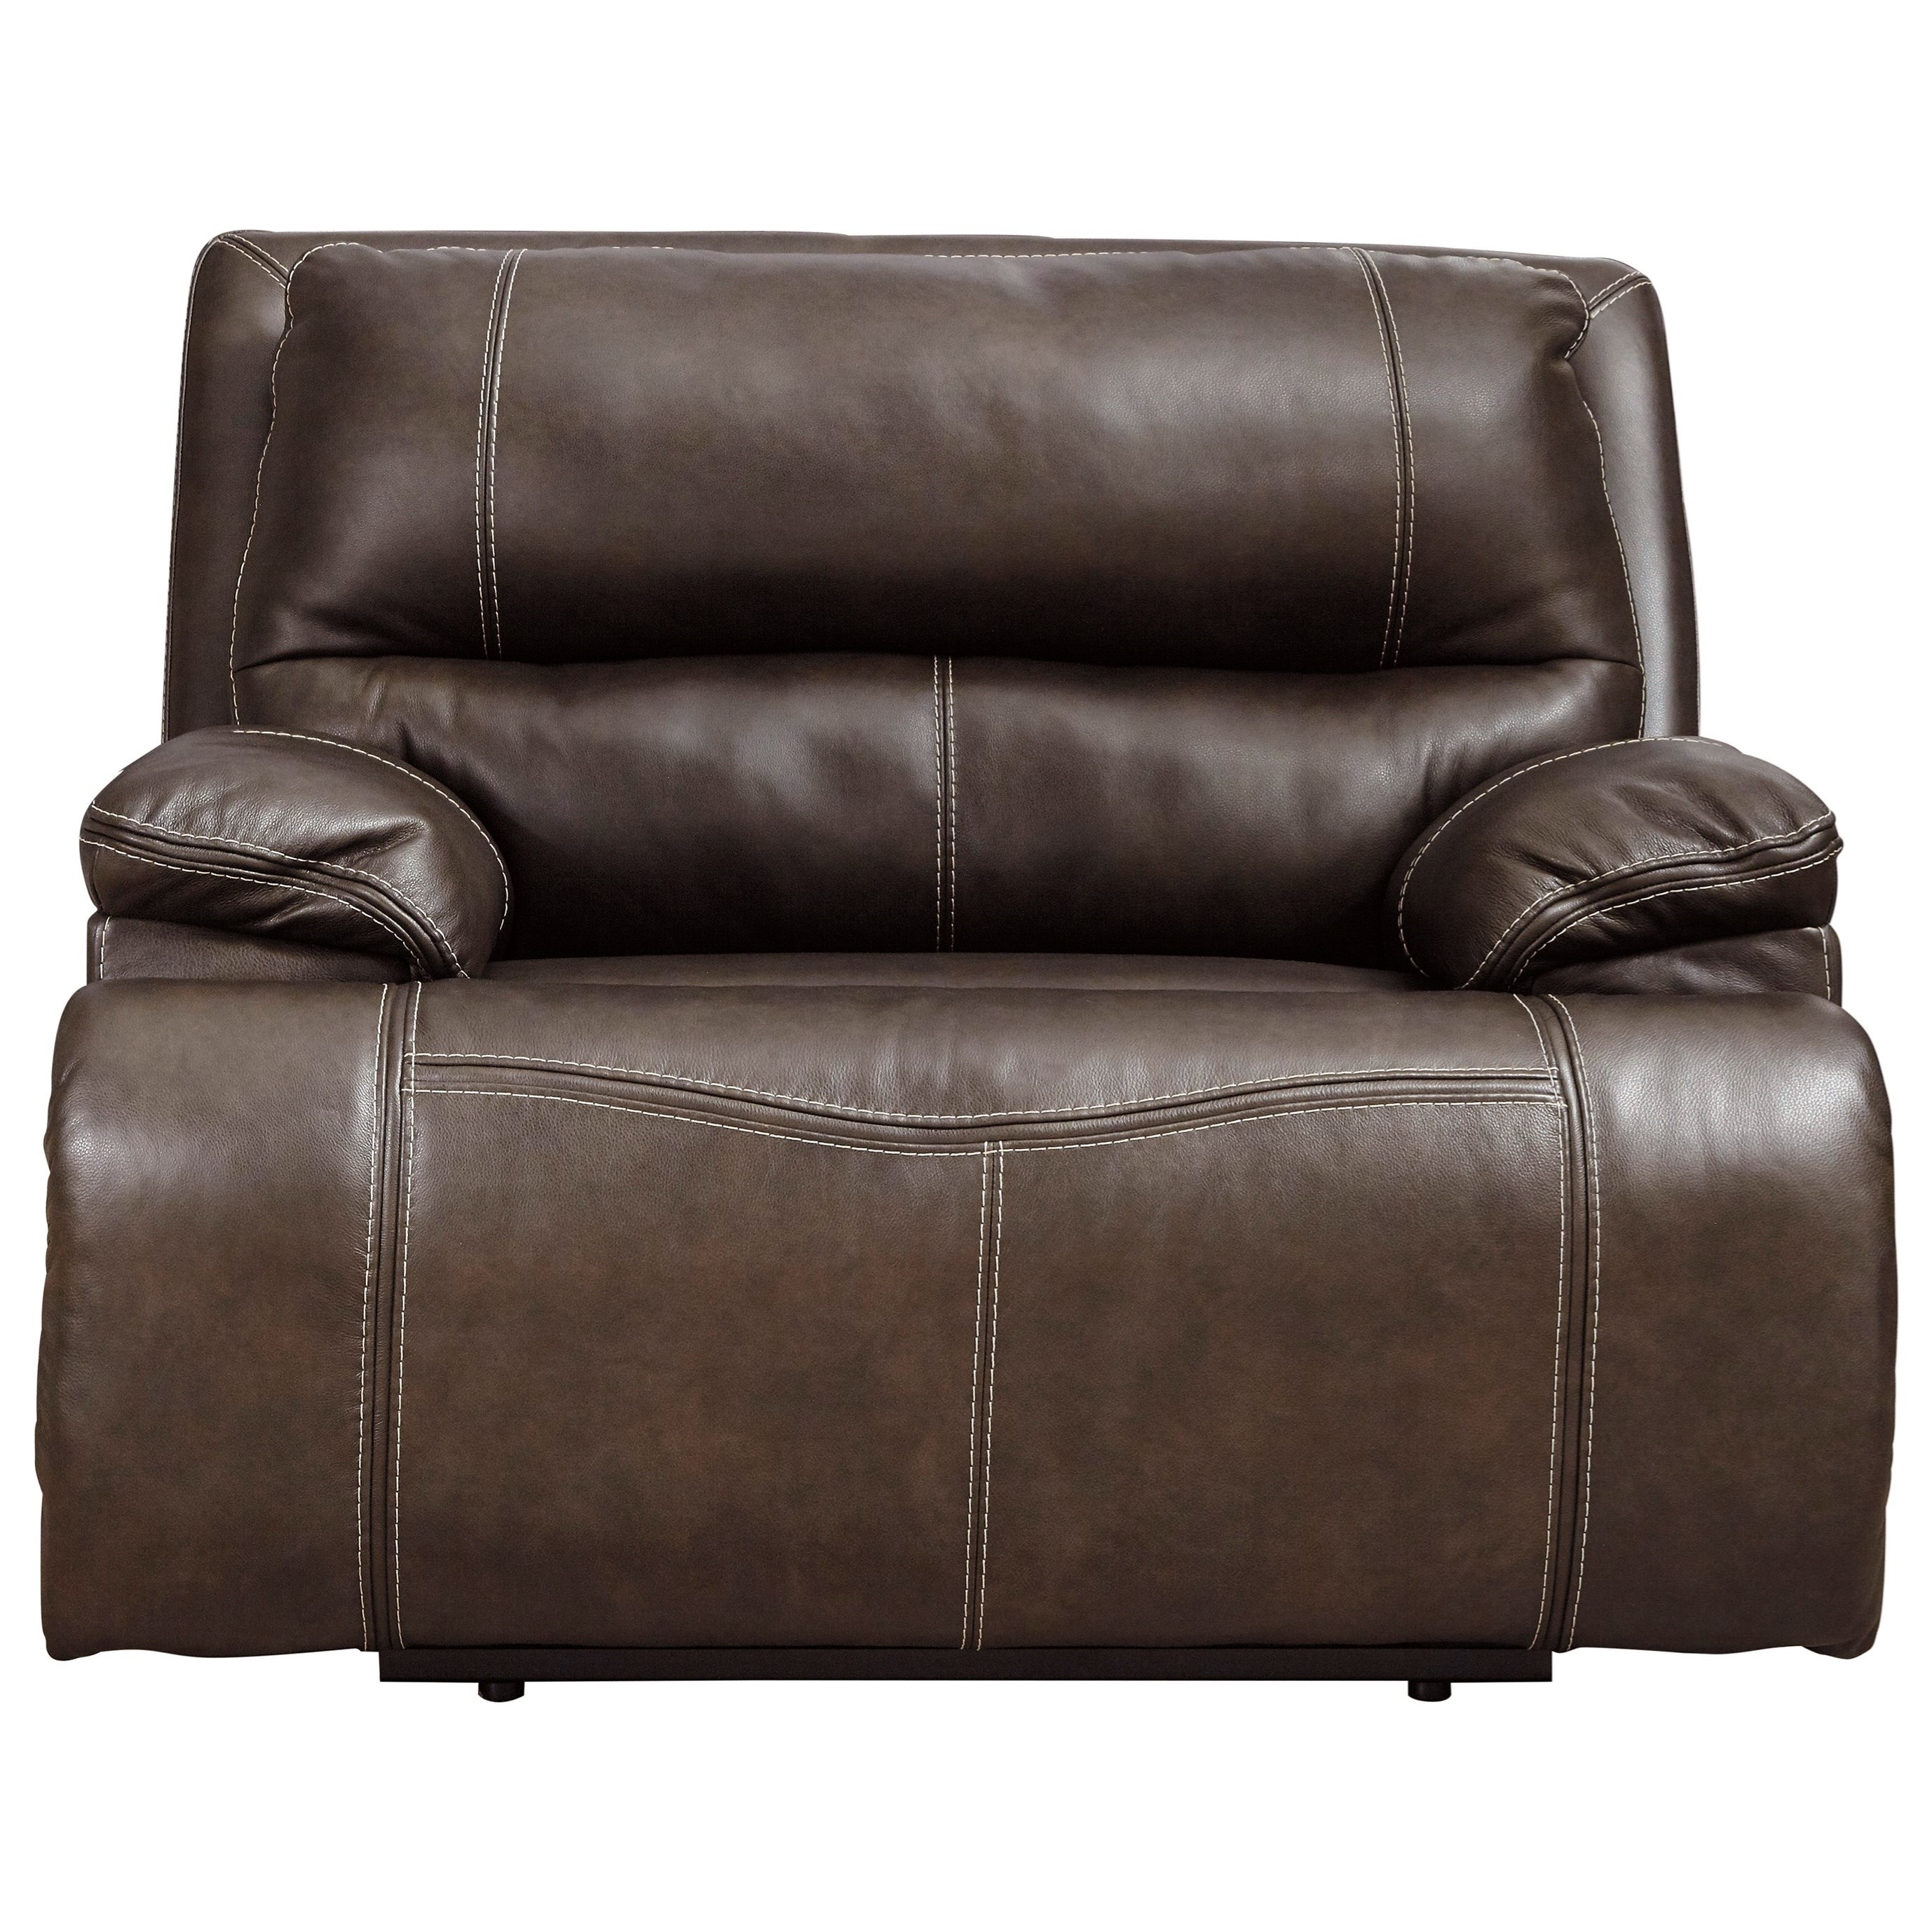 Ricmen Wide Seat Power Recliner by Signature Design by Ashley at Beck's Furniture